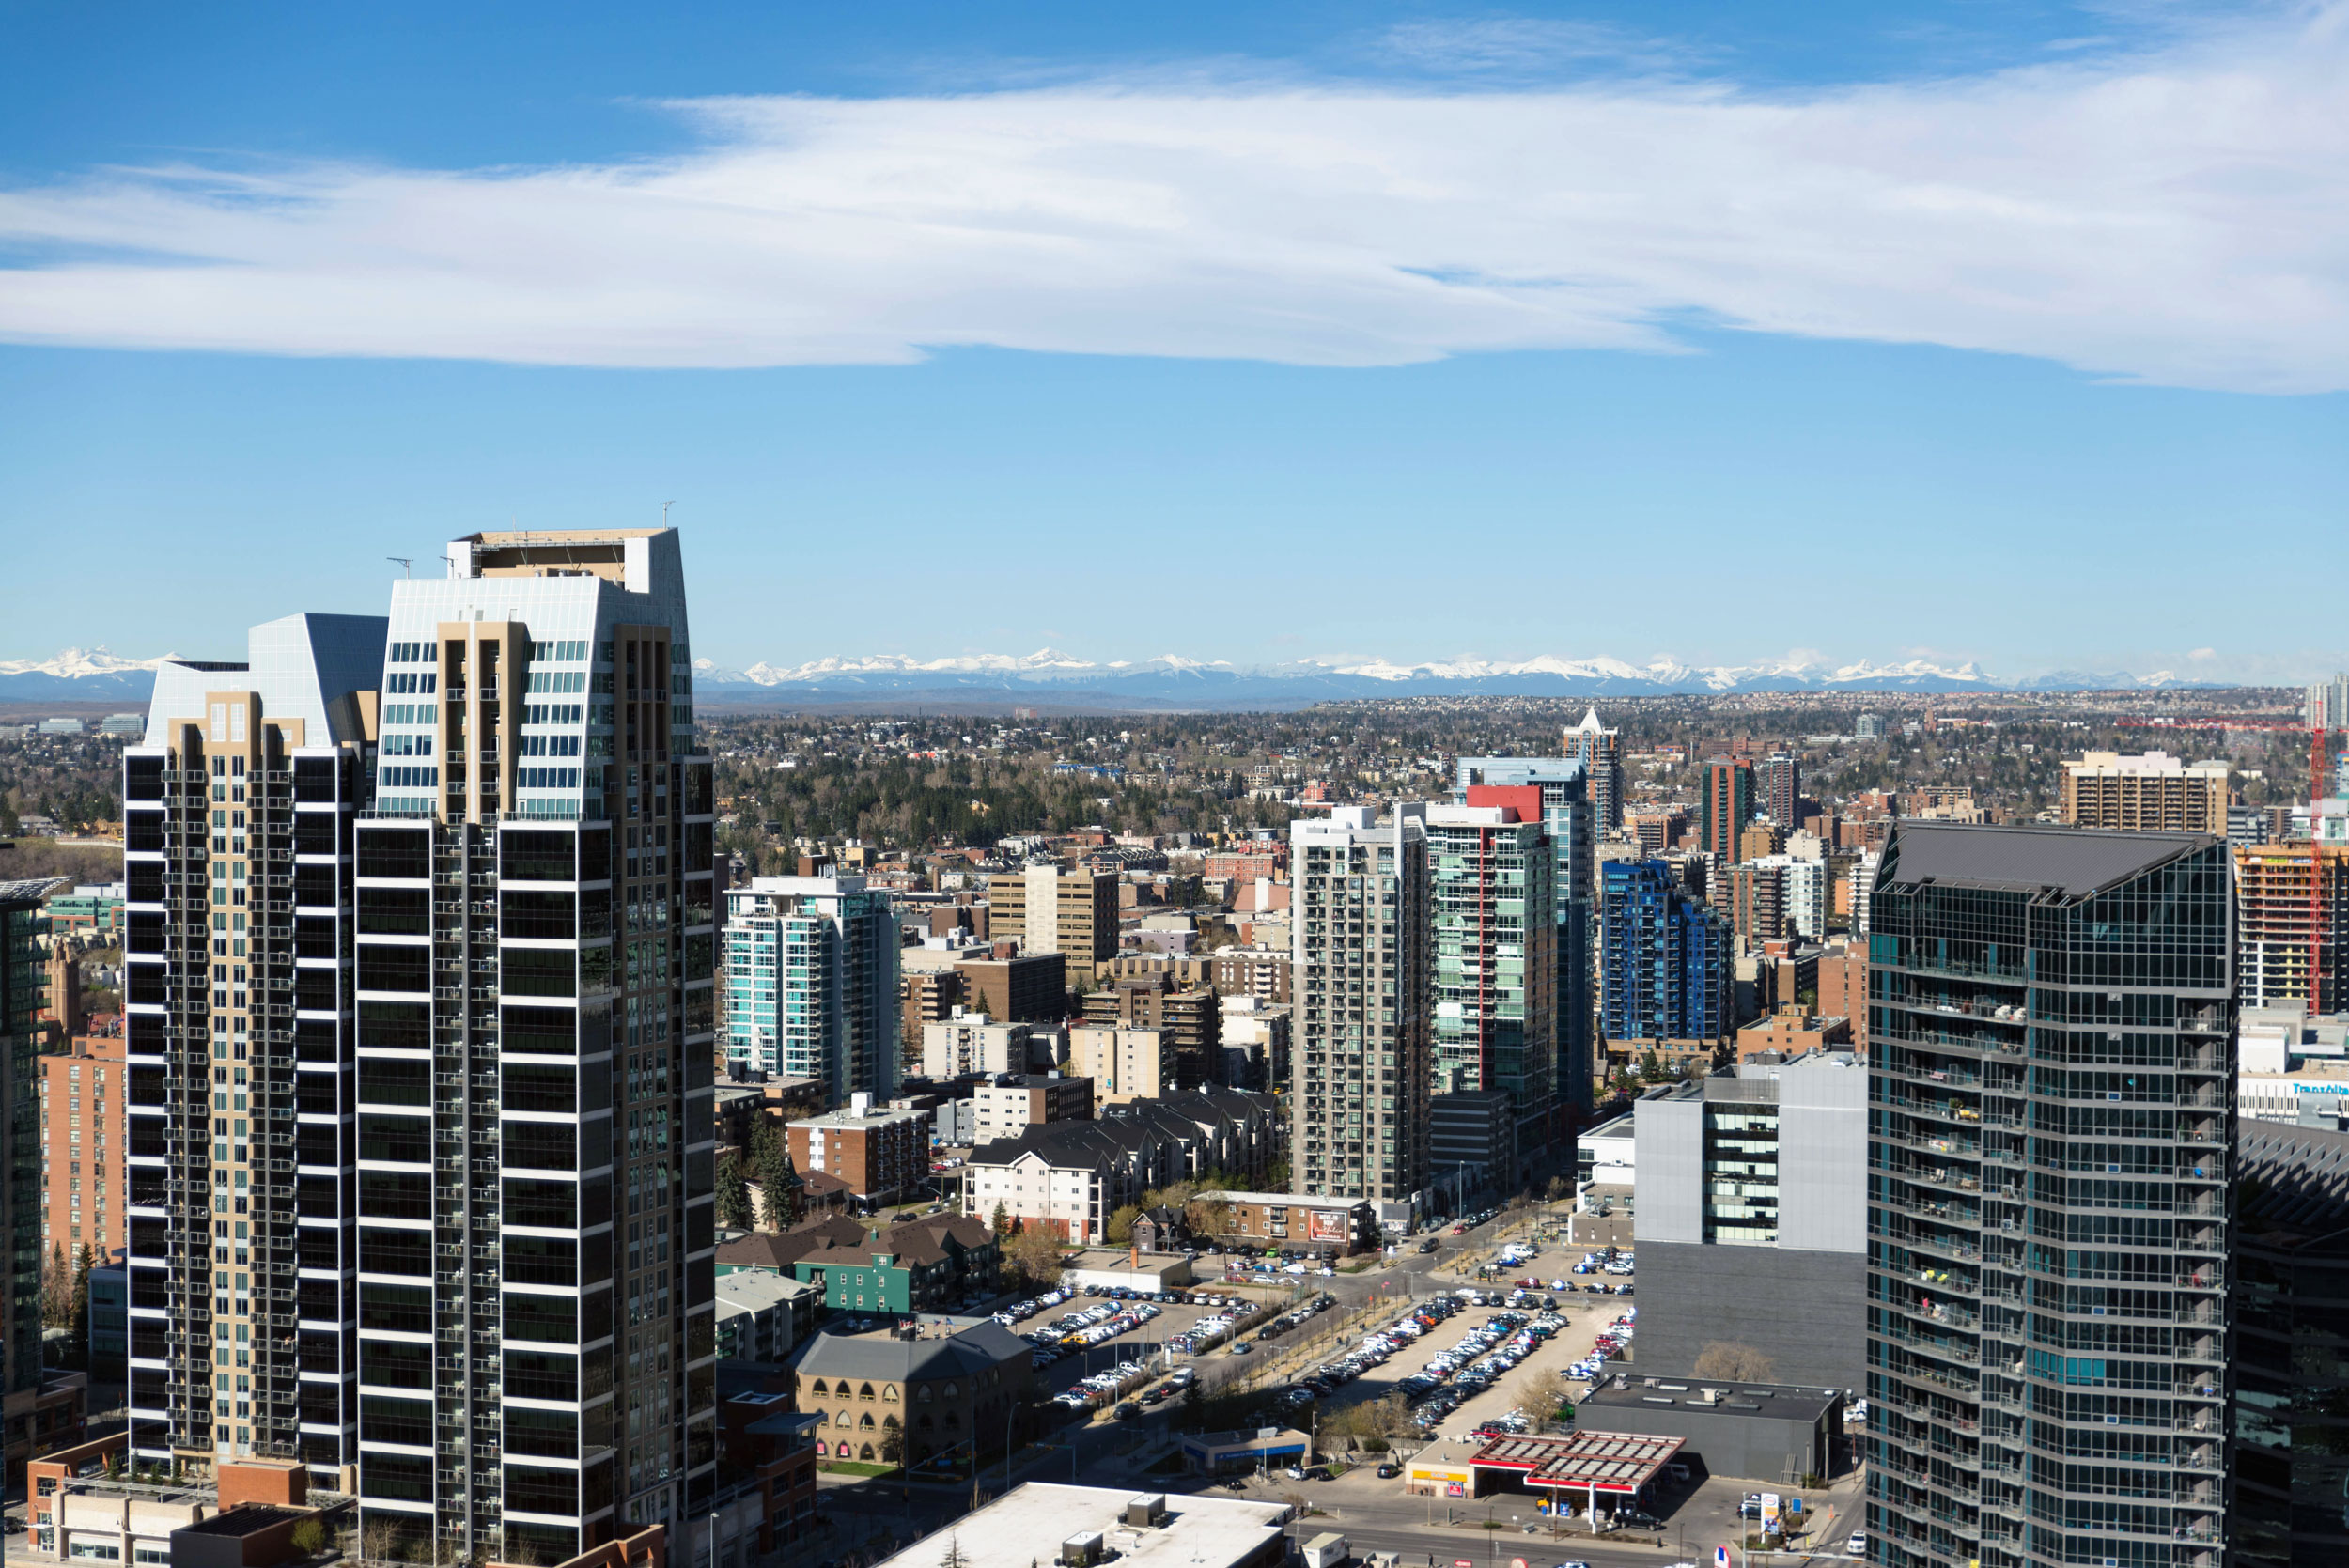 Calgary, south of downtown, with the Canadian Rockies in the distance